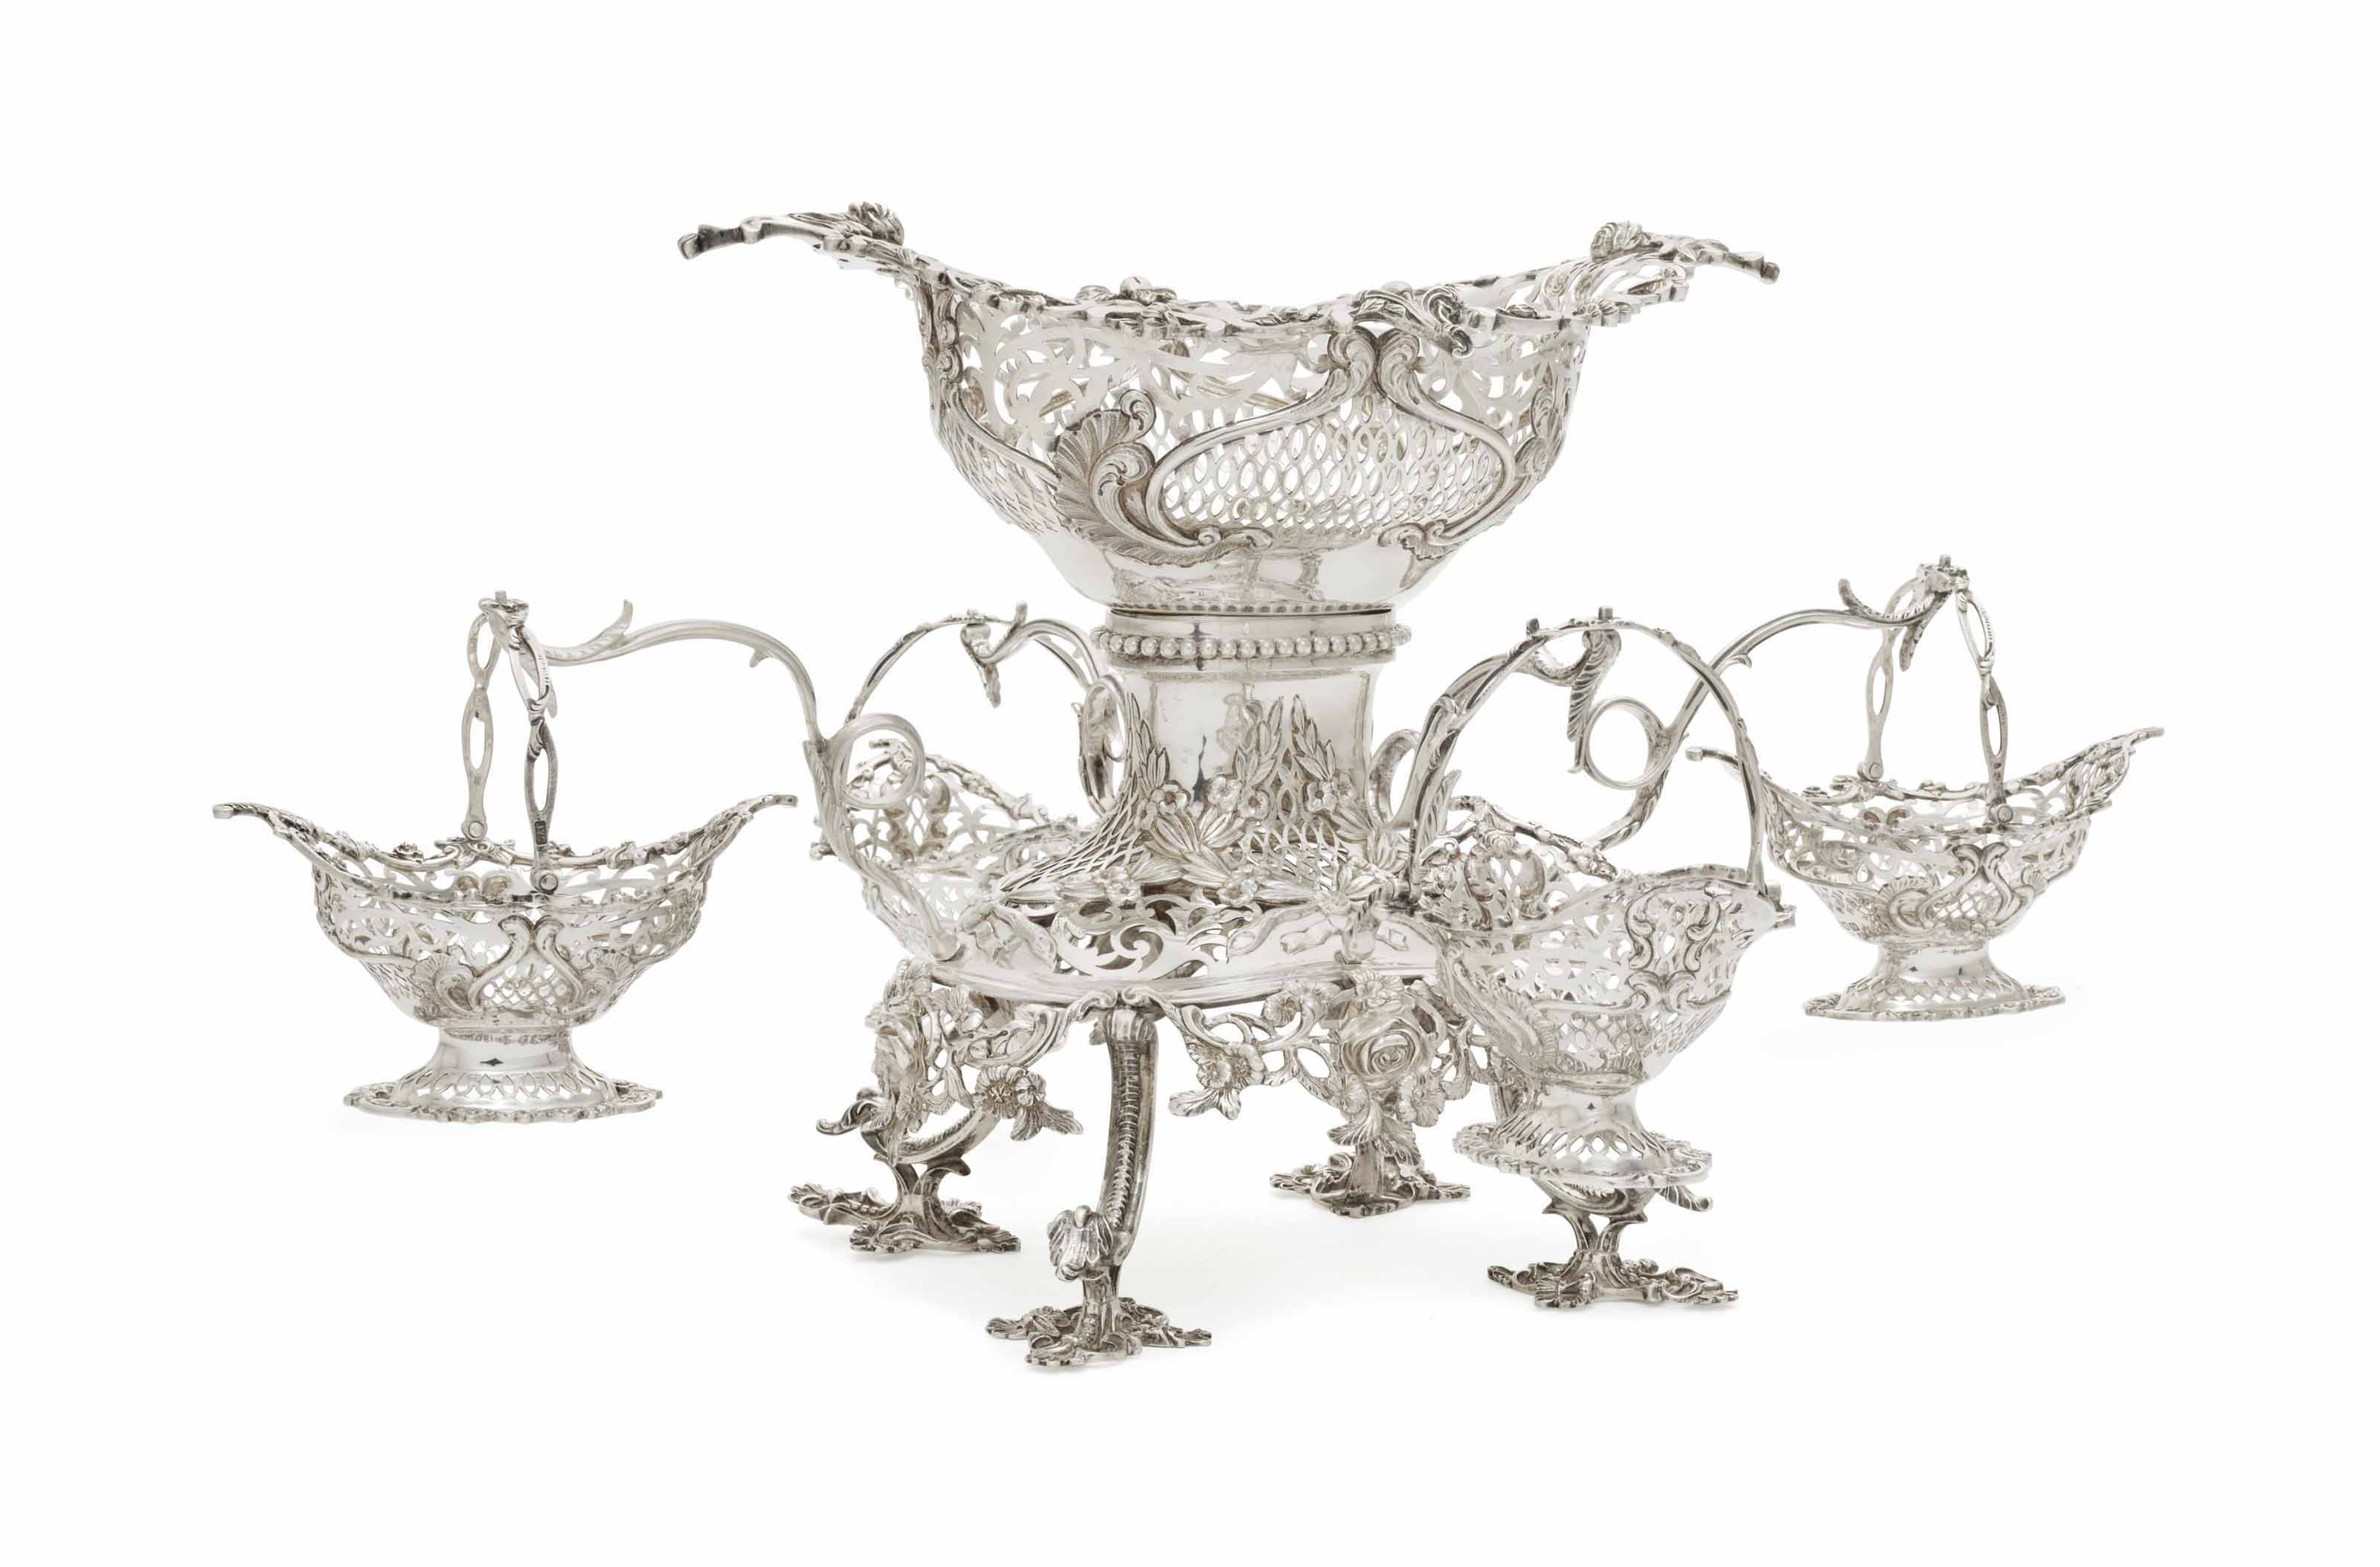 AN EDWARD VII SILVER EPERGNE